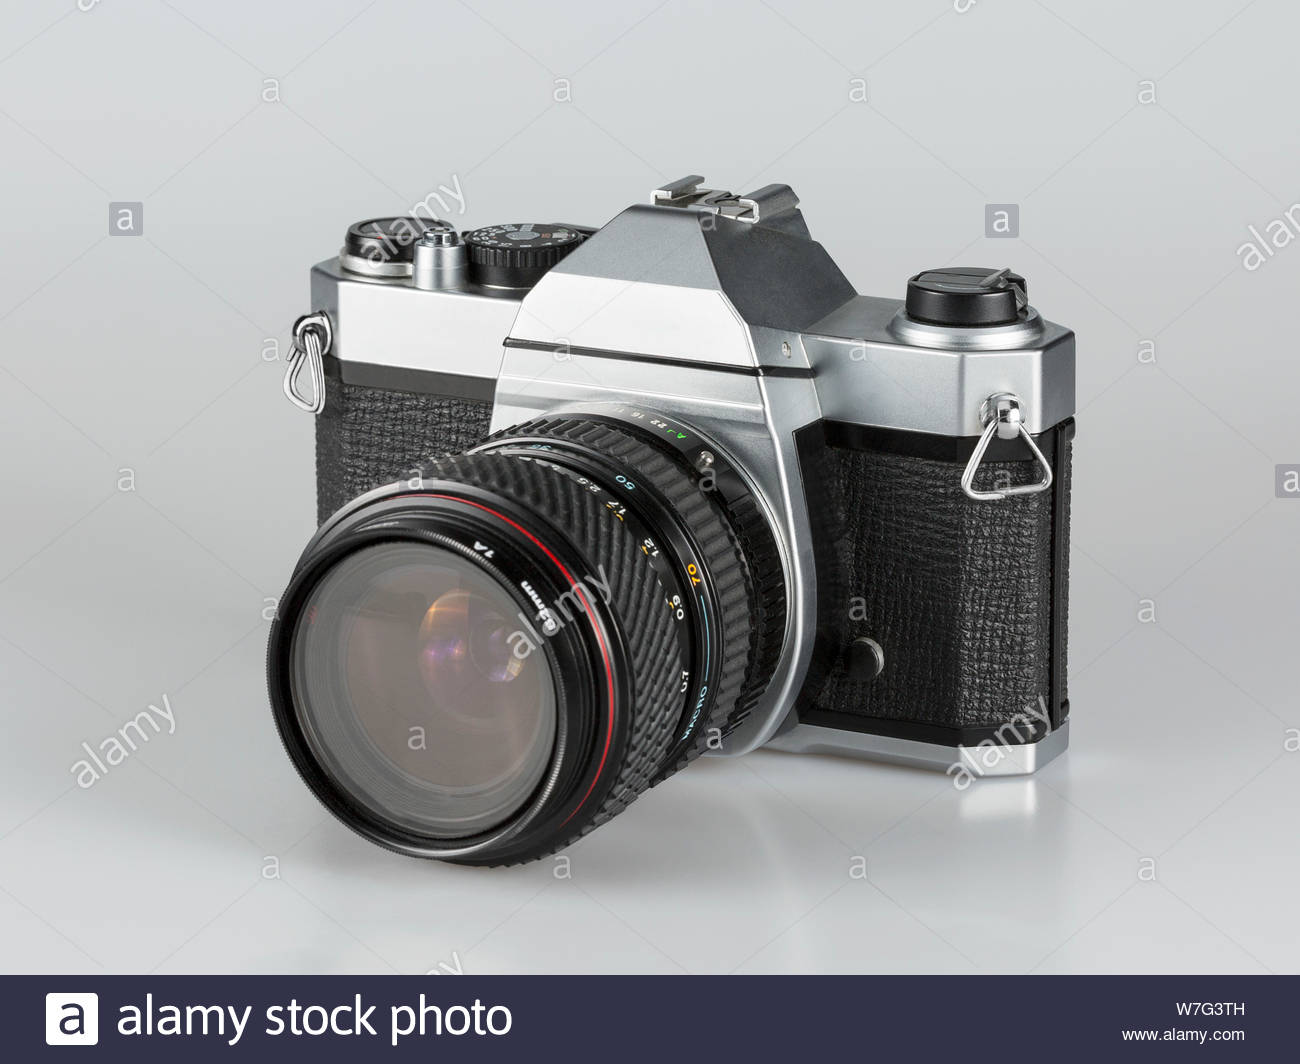 Manual Camera Stock Photos & Manual Camera Stock Images - Alamy